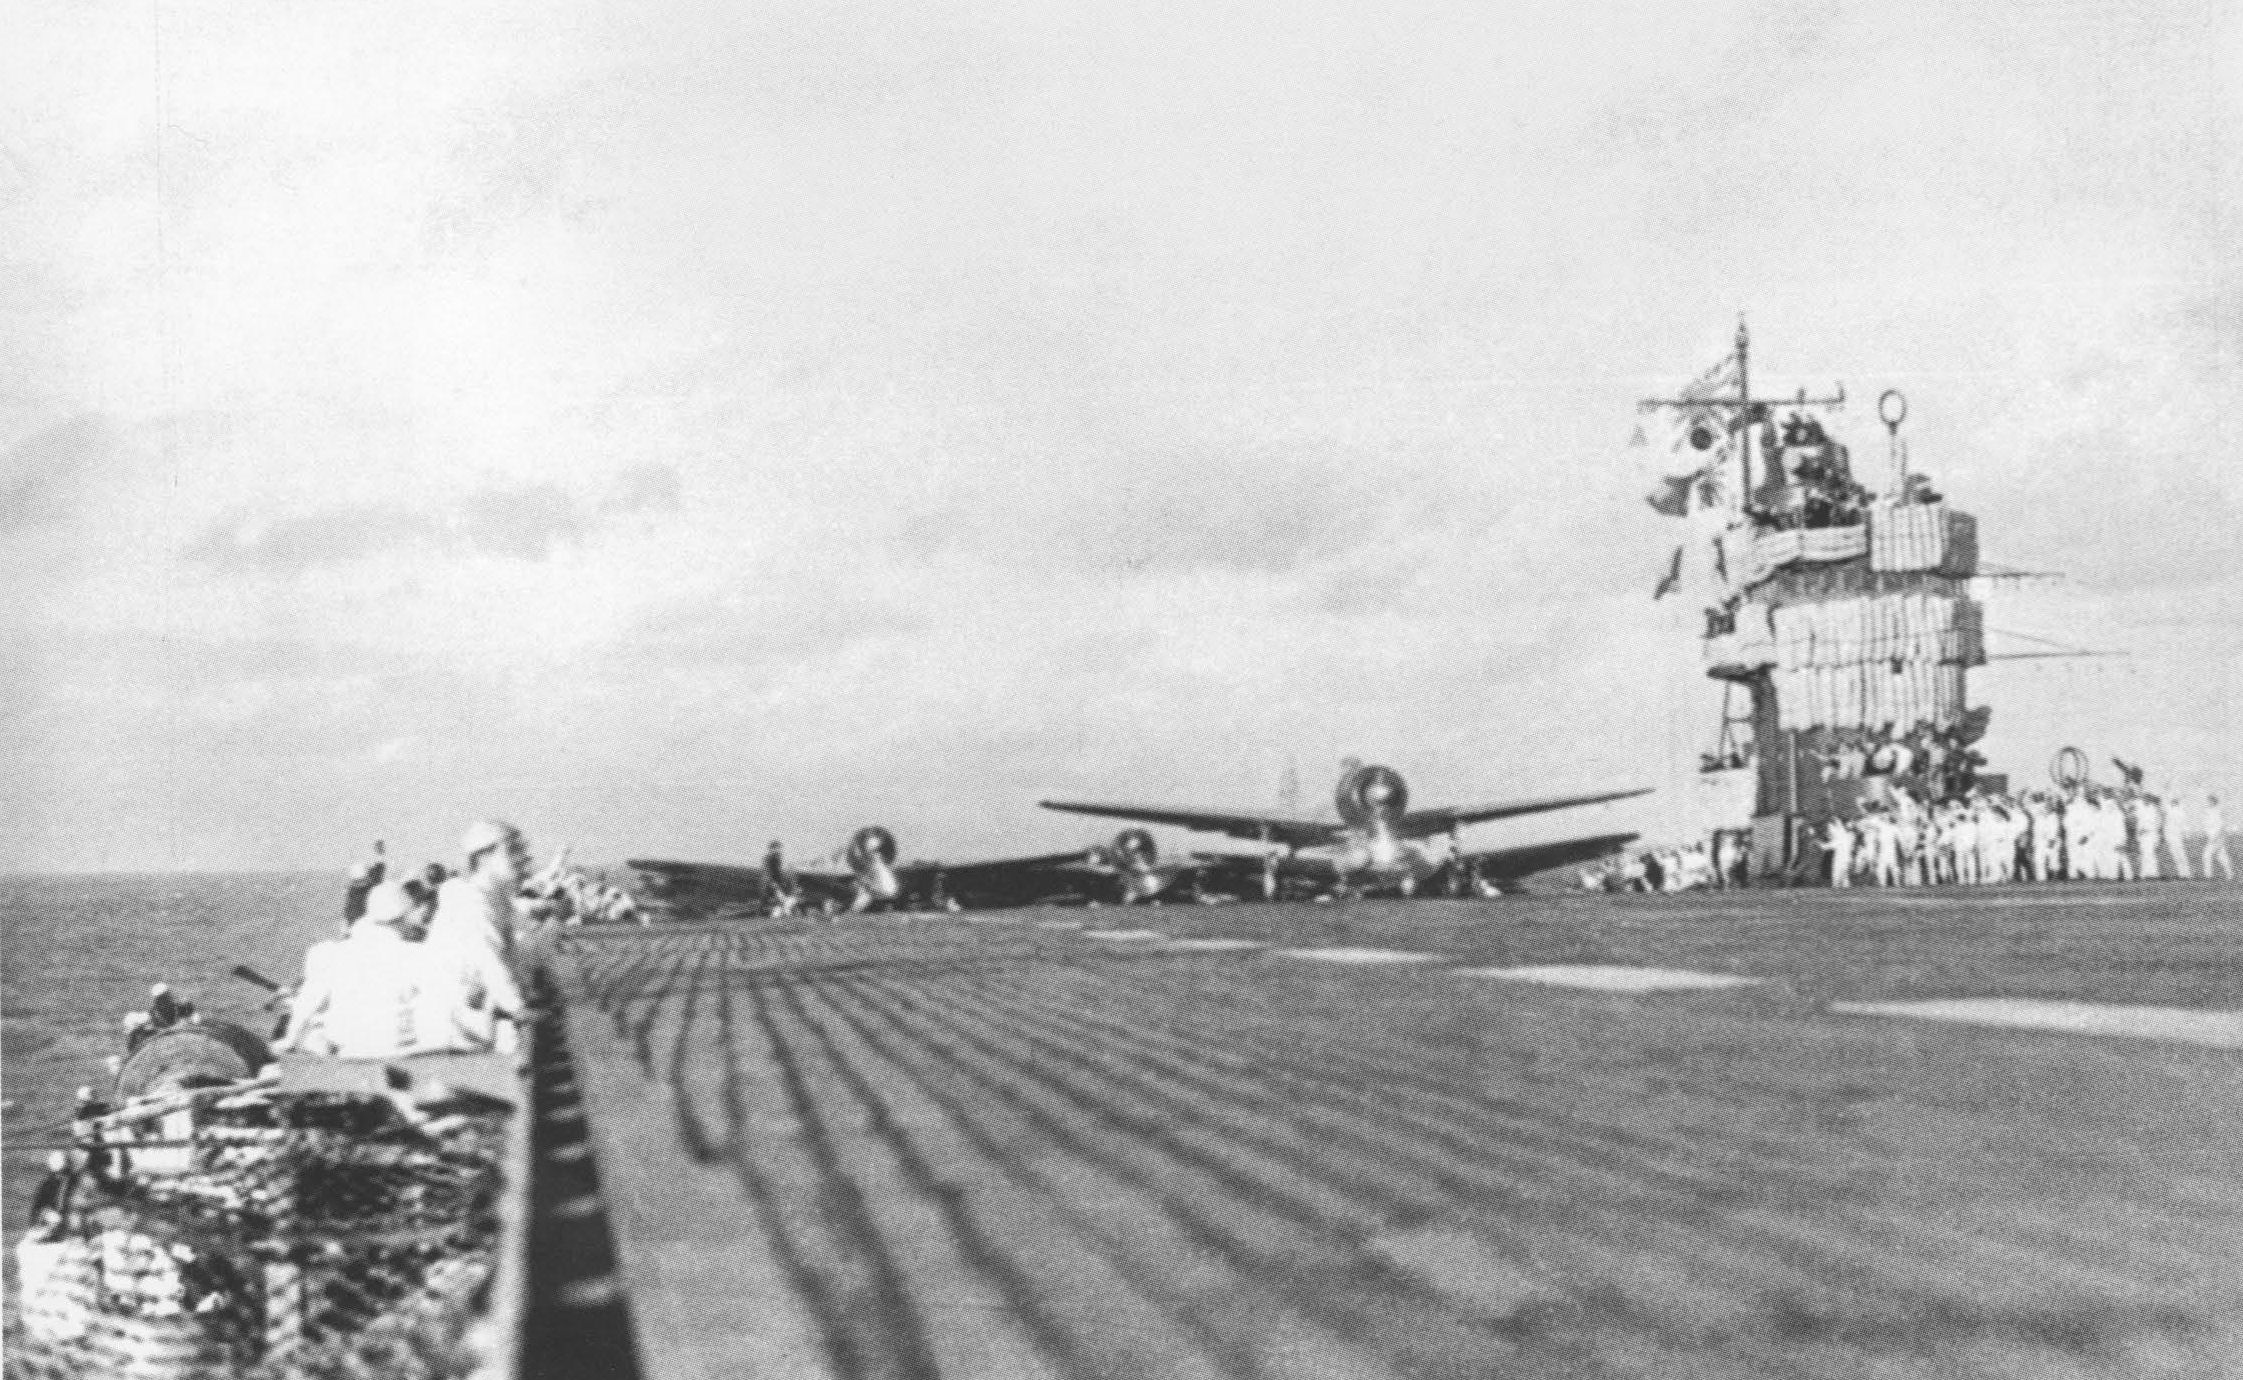 Aircraft prepare for take-off aboard Akagi.